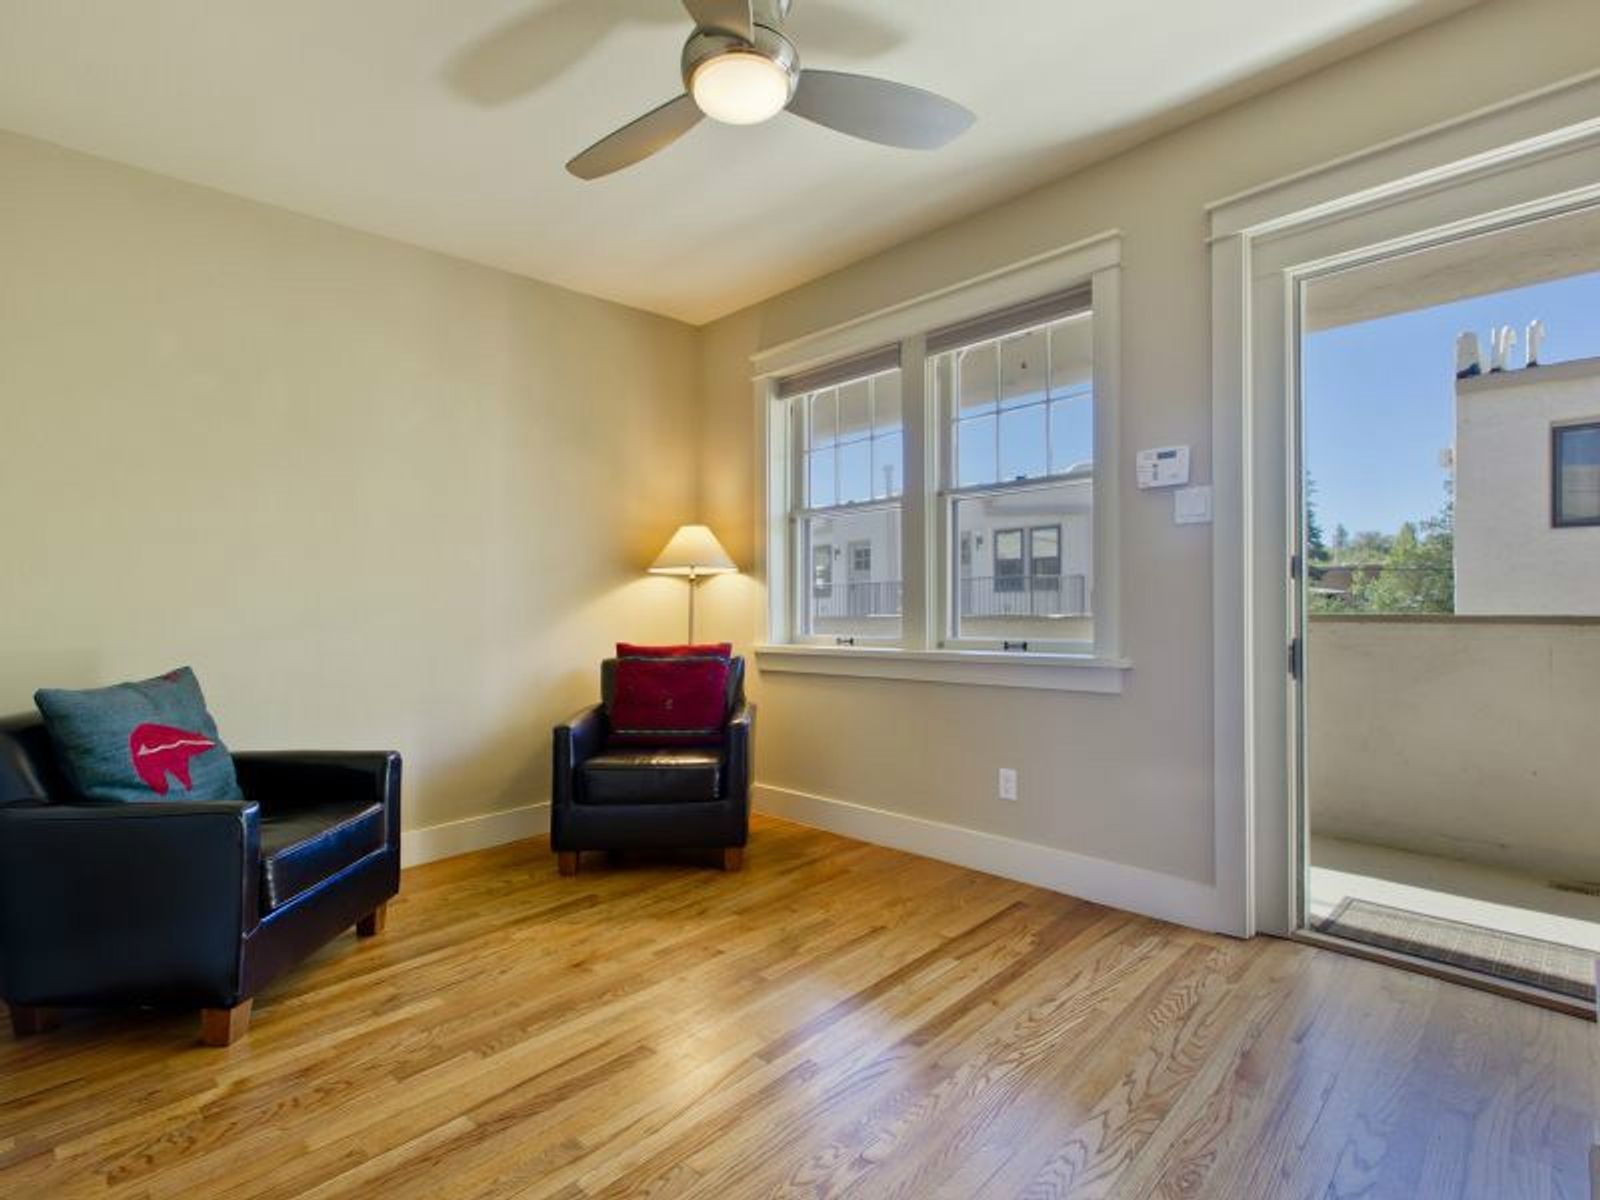 111 Santa Fe Ave #3, Santa Fe NM Condominium - Santa Fe Real Estate